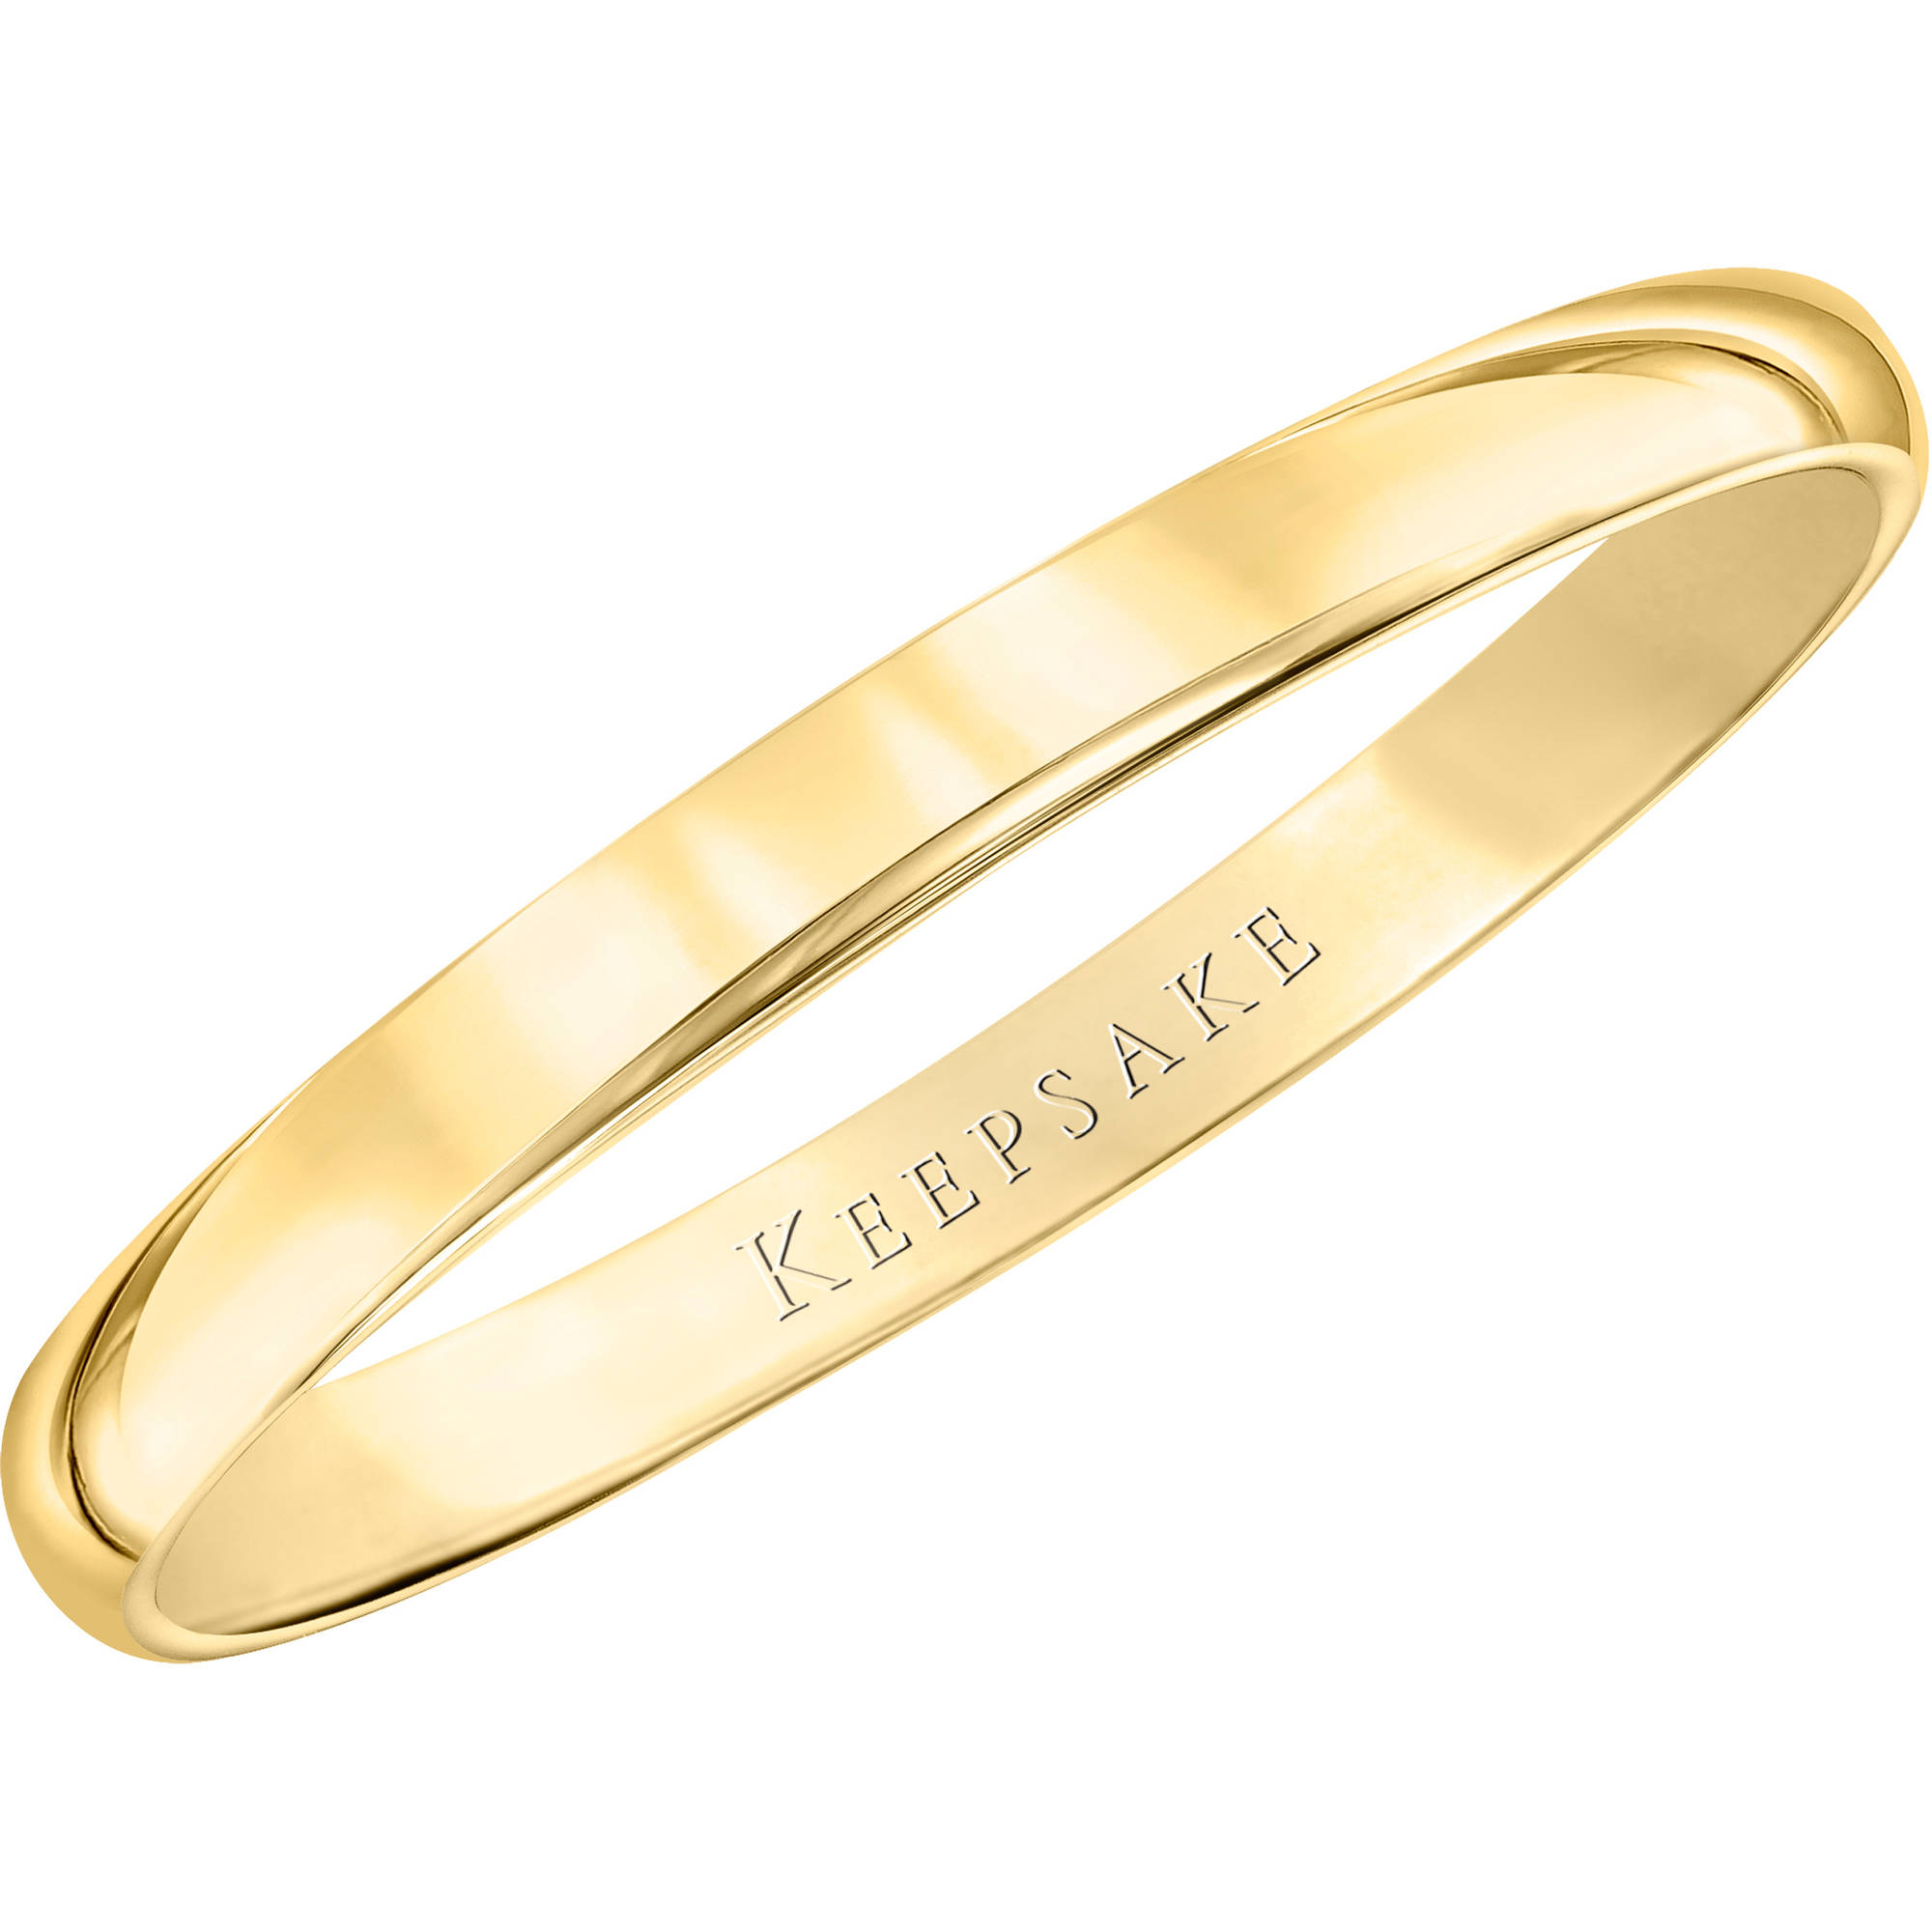 Keepsake 10kt Yellow Gold Wedding Band, 2mm